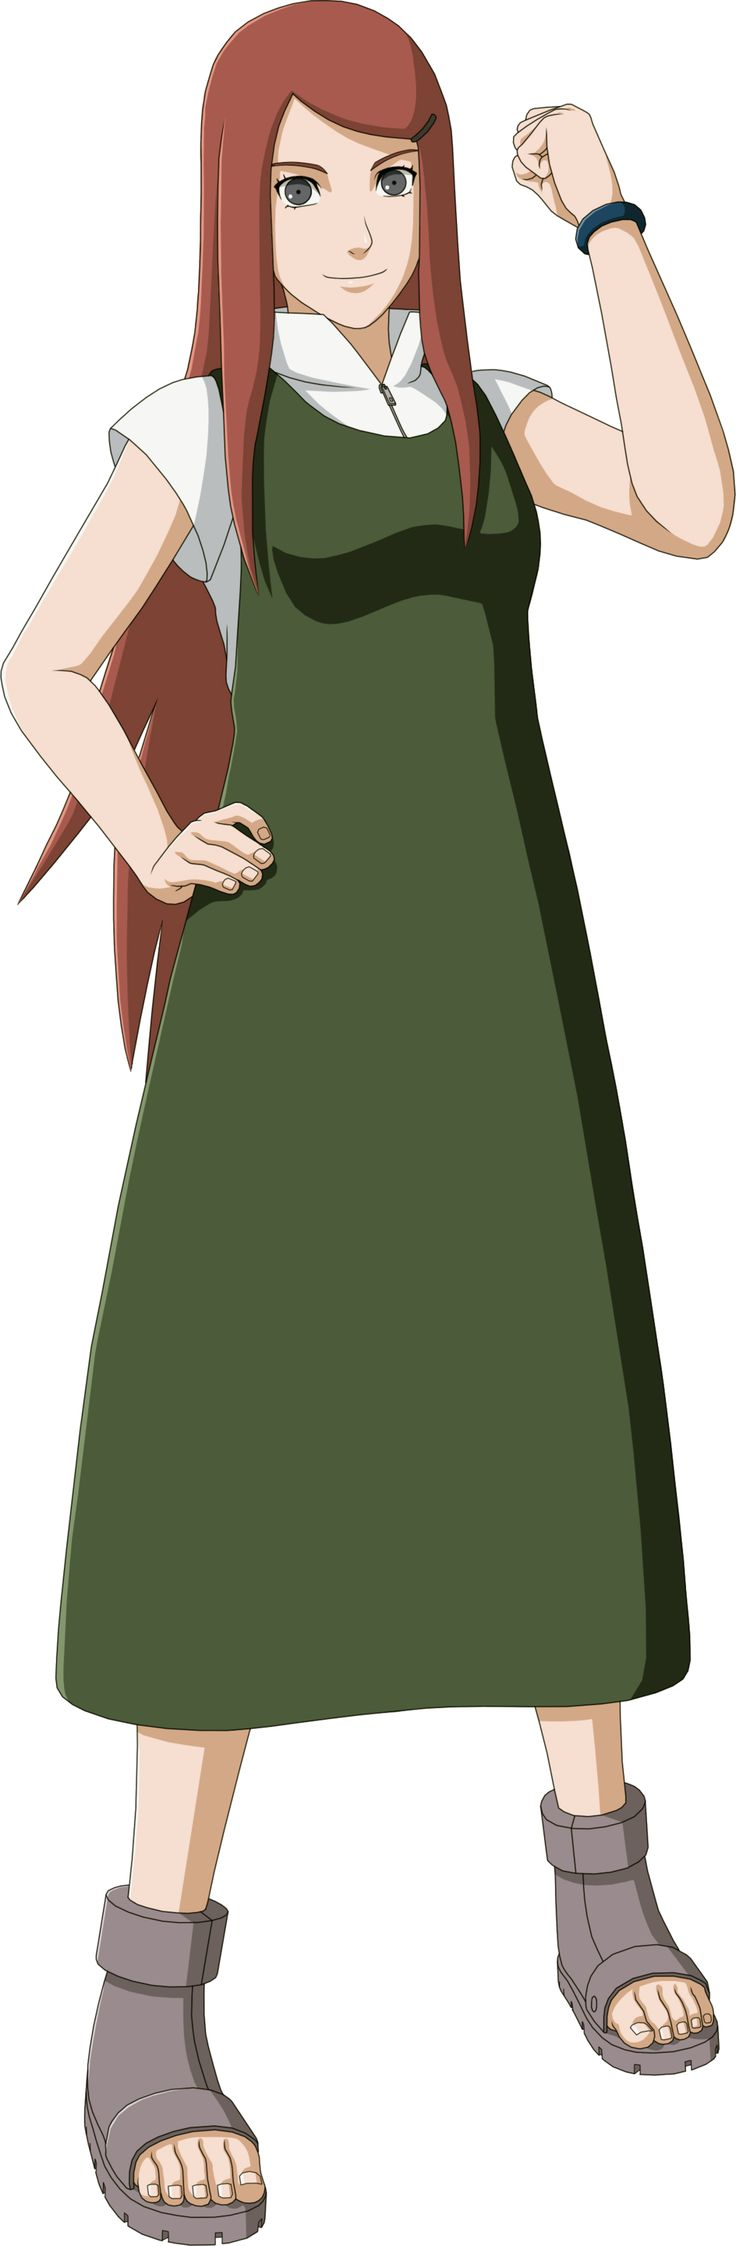 "Kushina Uzumaki (うずまきクシナ, Uzumaki Kushina) was a Konohagakure kunoichi who originated from Uzushiogakure's Uzumaki clan. She was the second jinchūriki of the Nine-Tails and the mother of Naruto Uzumaki. Born into the famed Uzumaki clan of Uzushiogakure, Kushina lived most of her youth being caught-up in war, making her seek for a daily ""peace"". At a young age she was sent to Konoha and enrolled in the Academy."